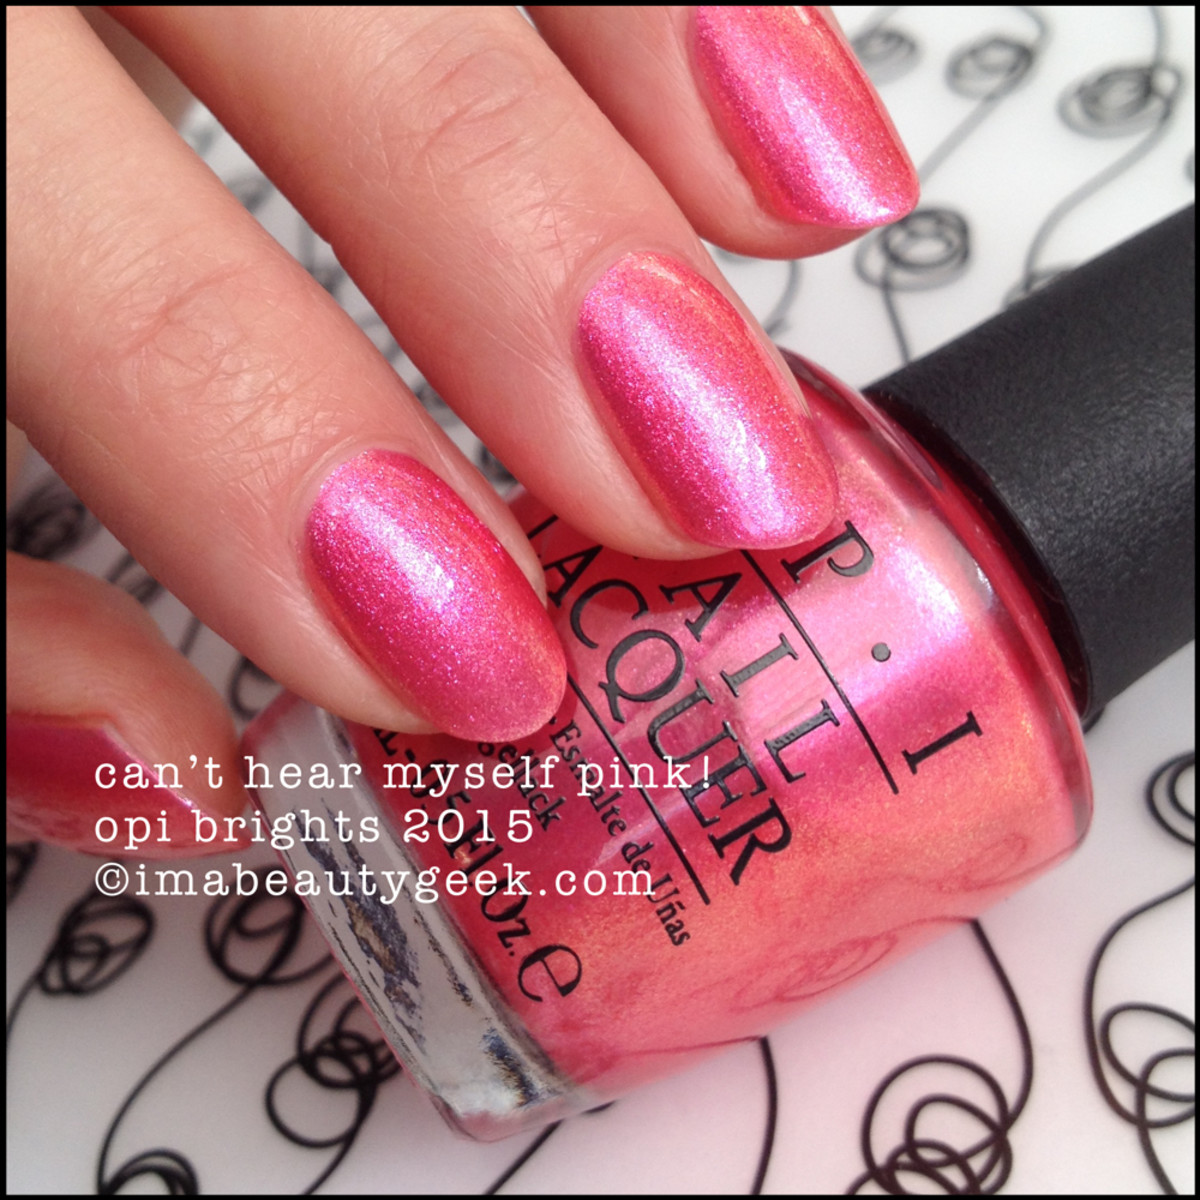 OPI Brights 2015_OPI Can't Hear Myself Pink!_2